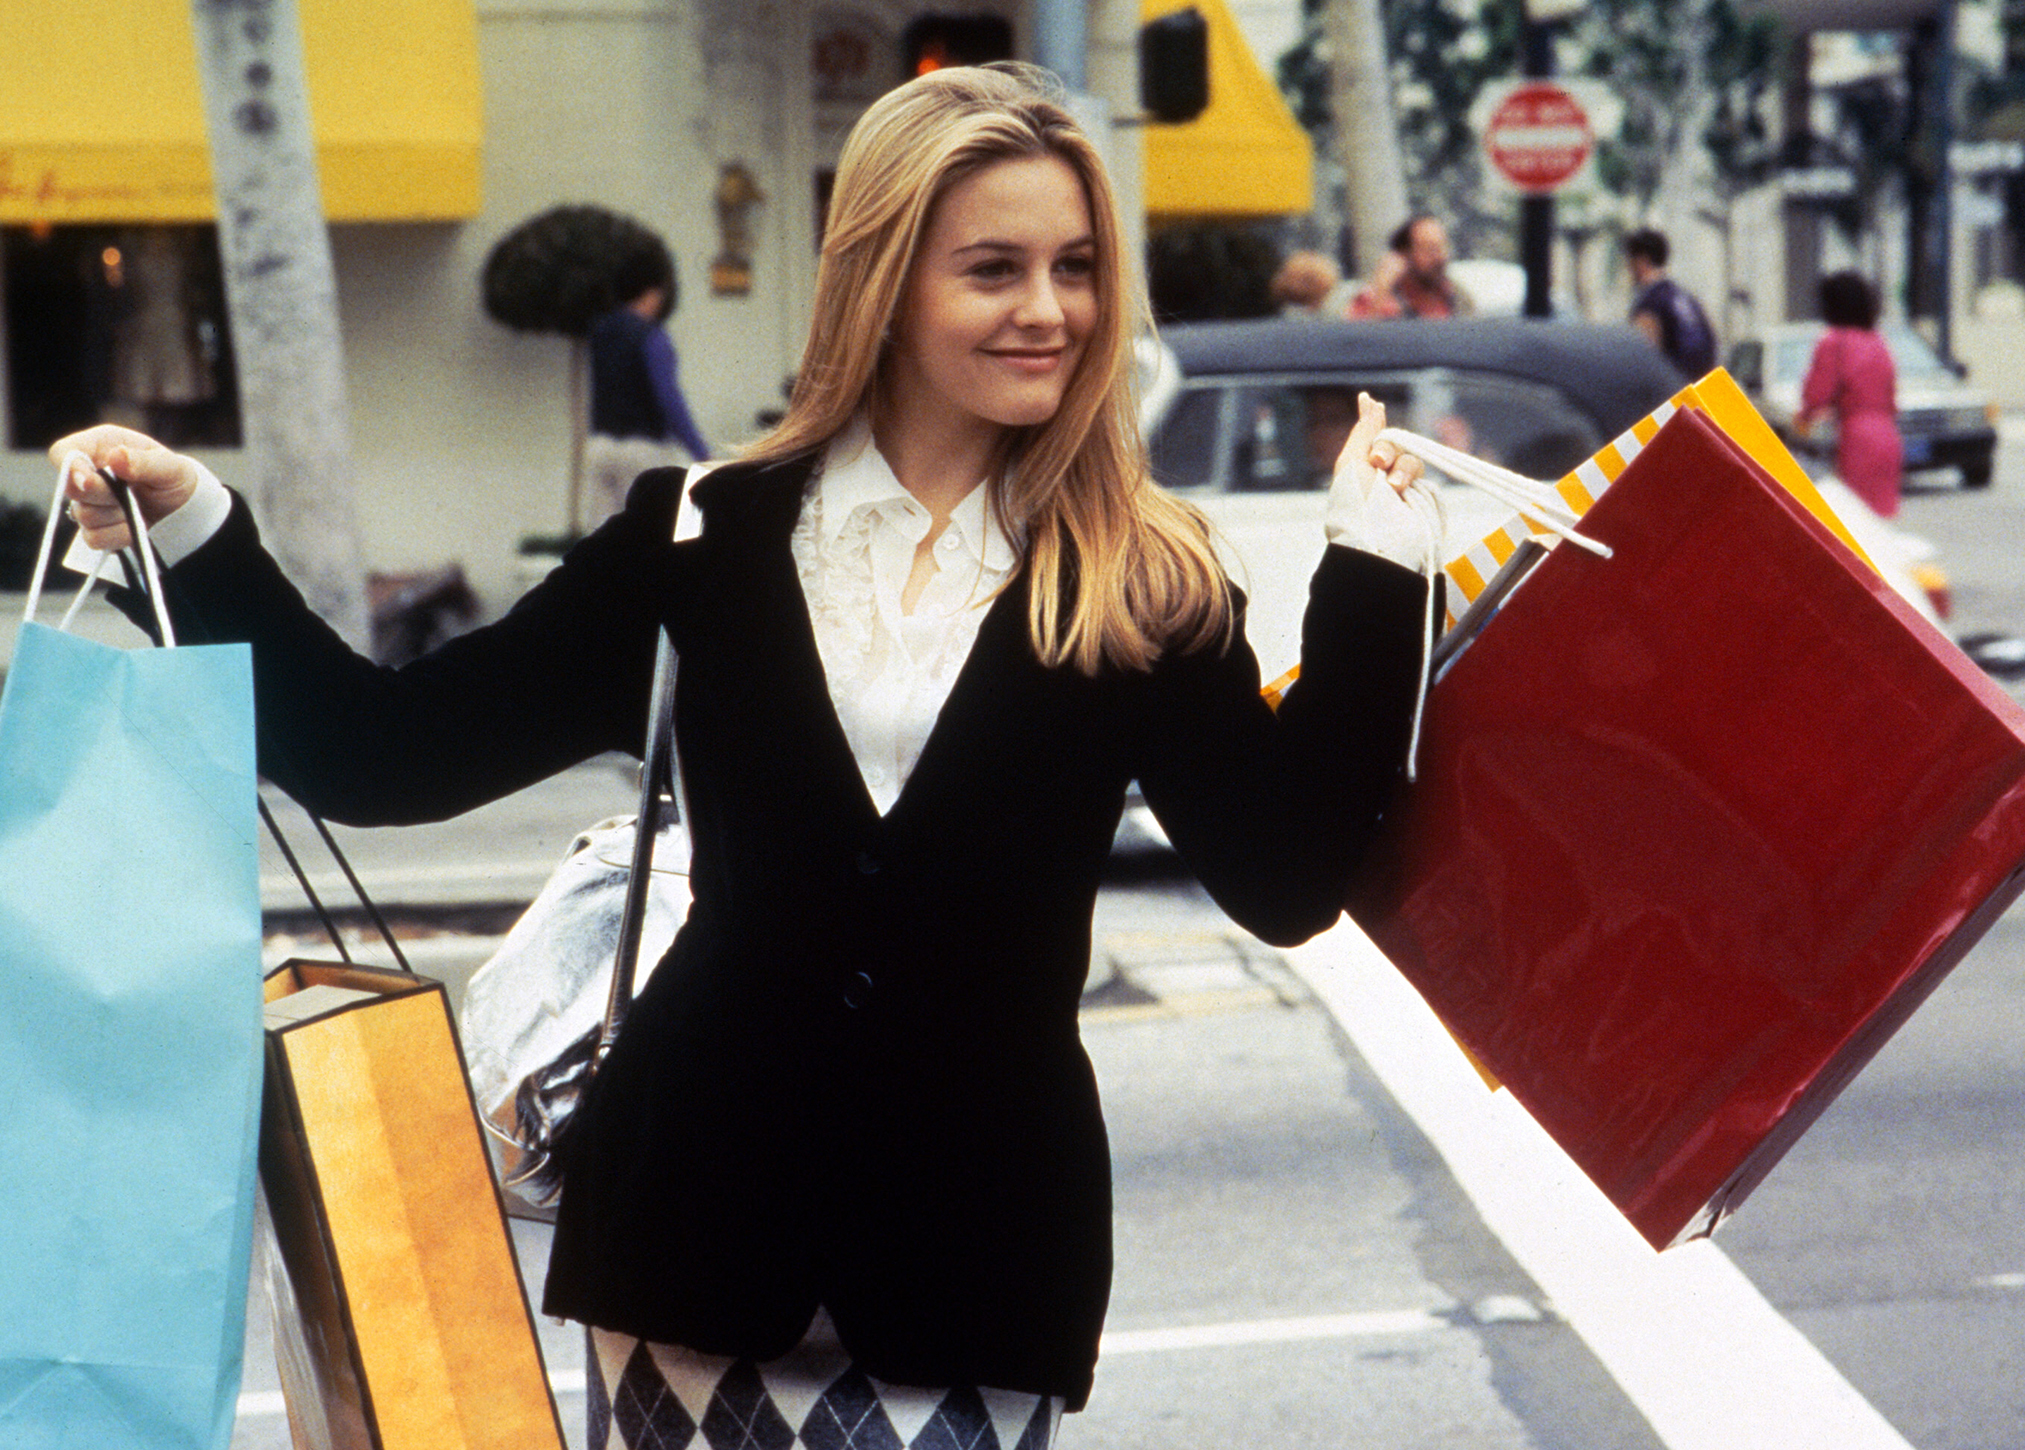 Clueless (1995)Directed by Amy HeckerlingShown: Alicia Silverstone